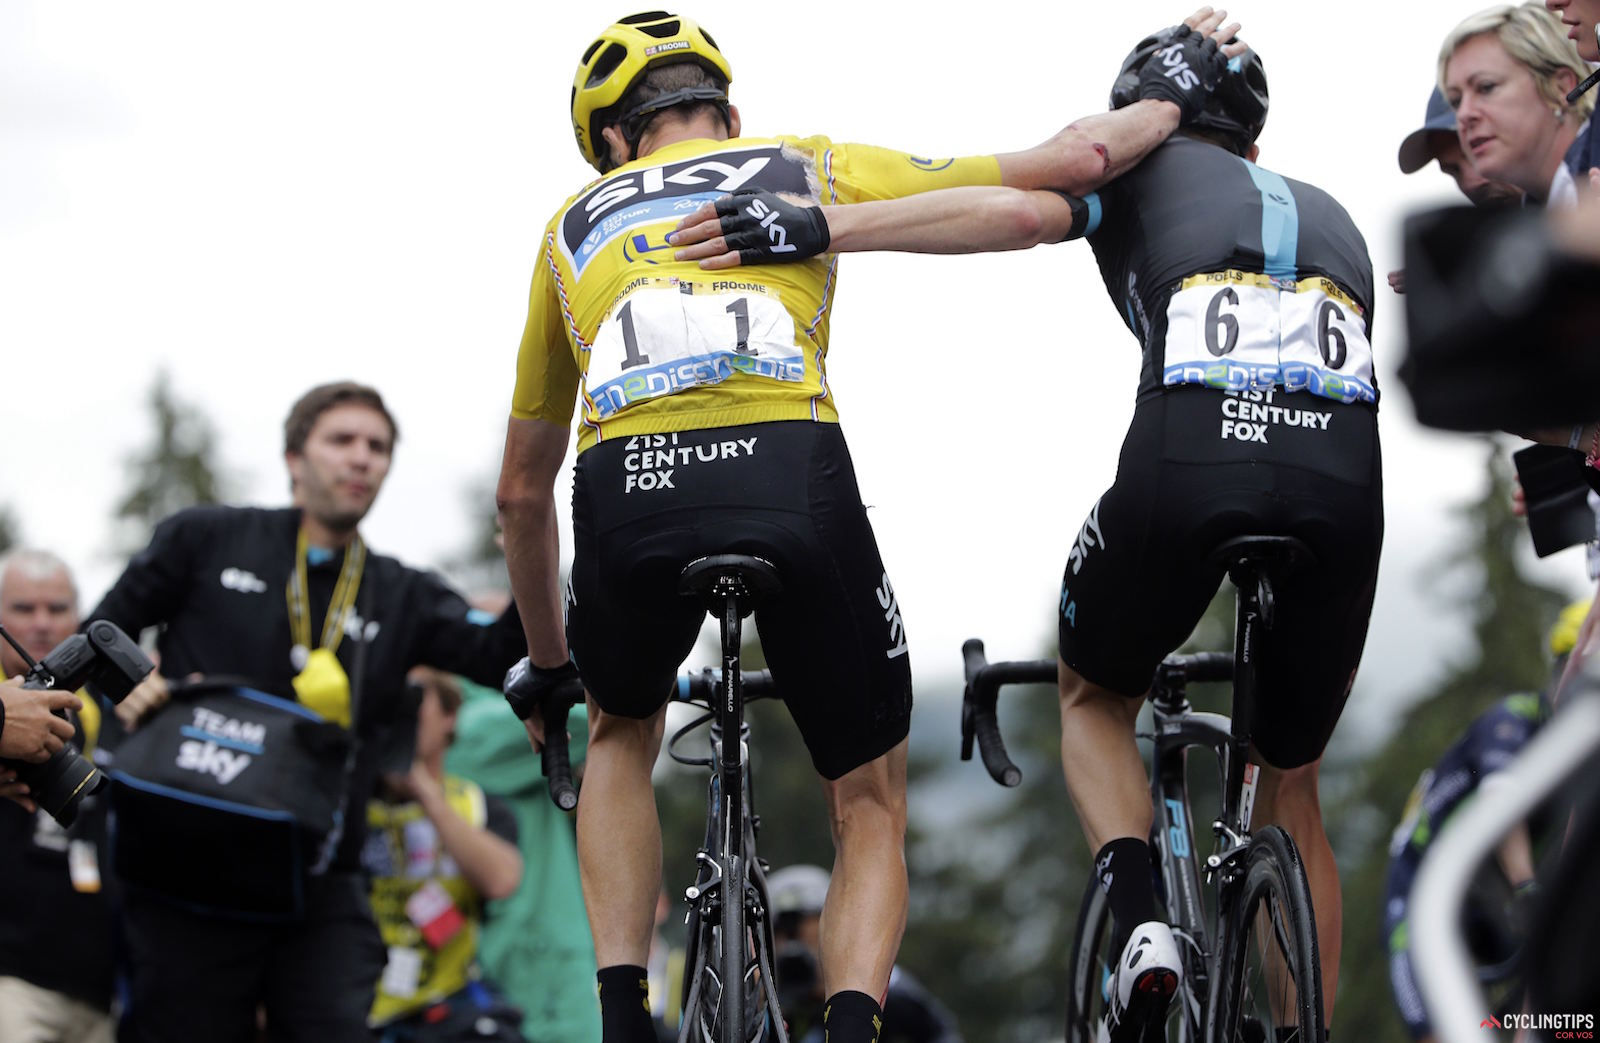 Chris Froome and Wout Poels (Team Sky), following stage 19 of the 2016 Tour de France. Photo JdM/PN/Cor Vos.